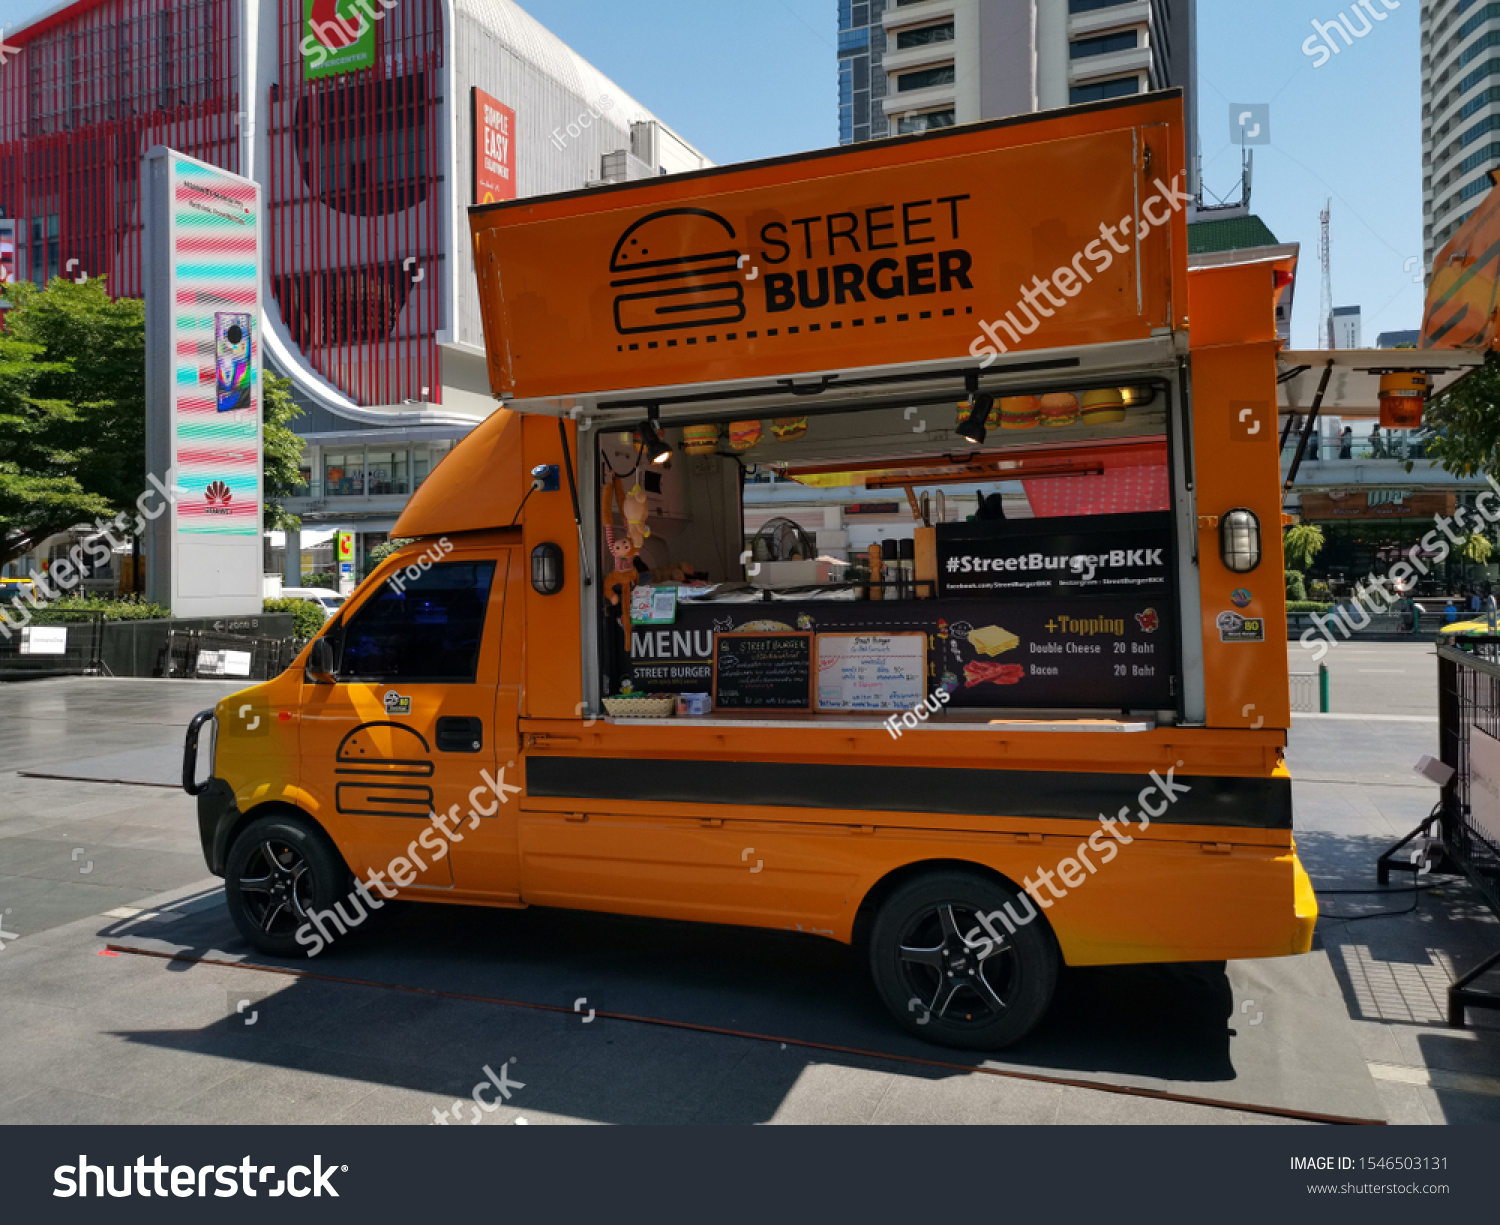 BANGKOK, THAILAND - OCTOBER 31, 2019: A food truck is parked outside of shopping mall CentralWorld on October 31, 2019 in Thai capital Bangkok